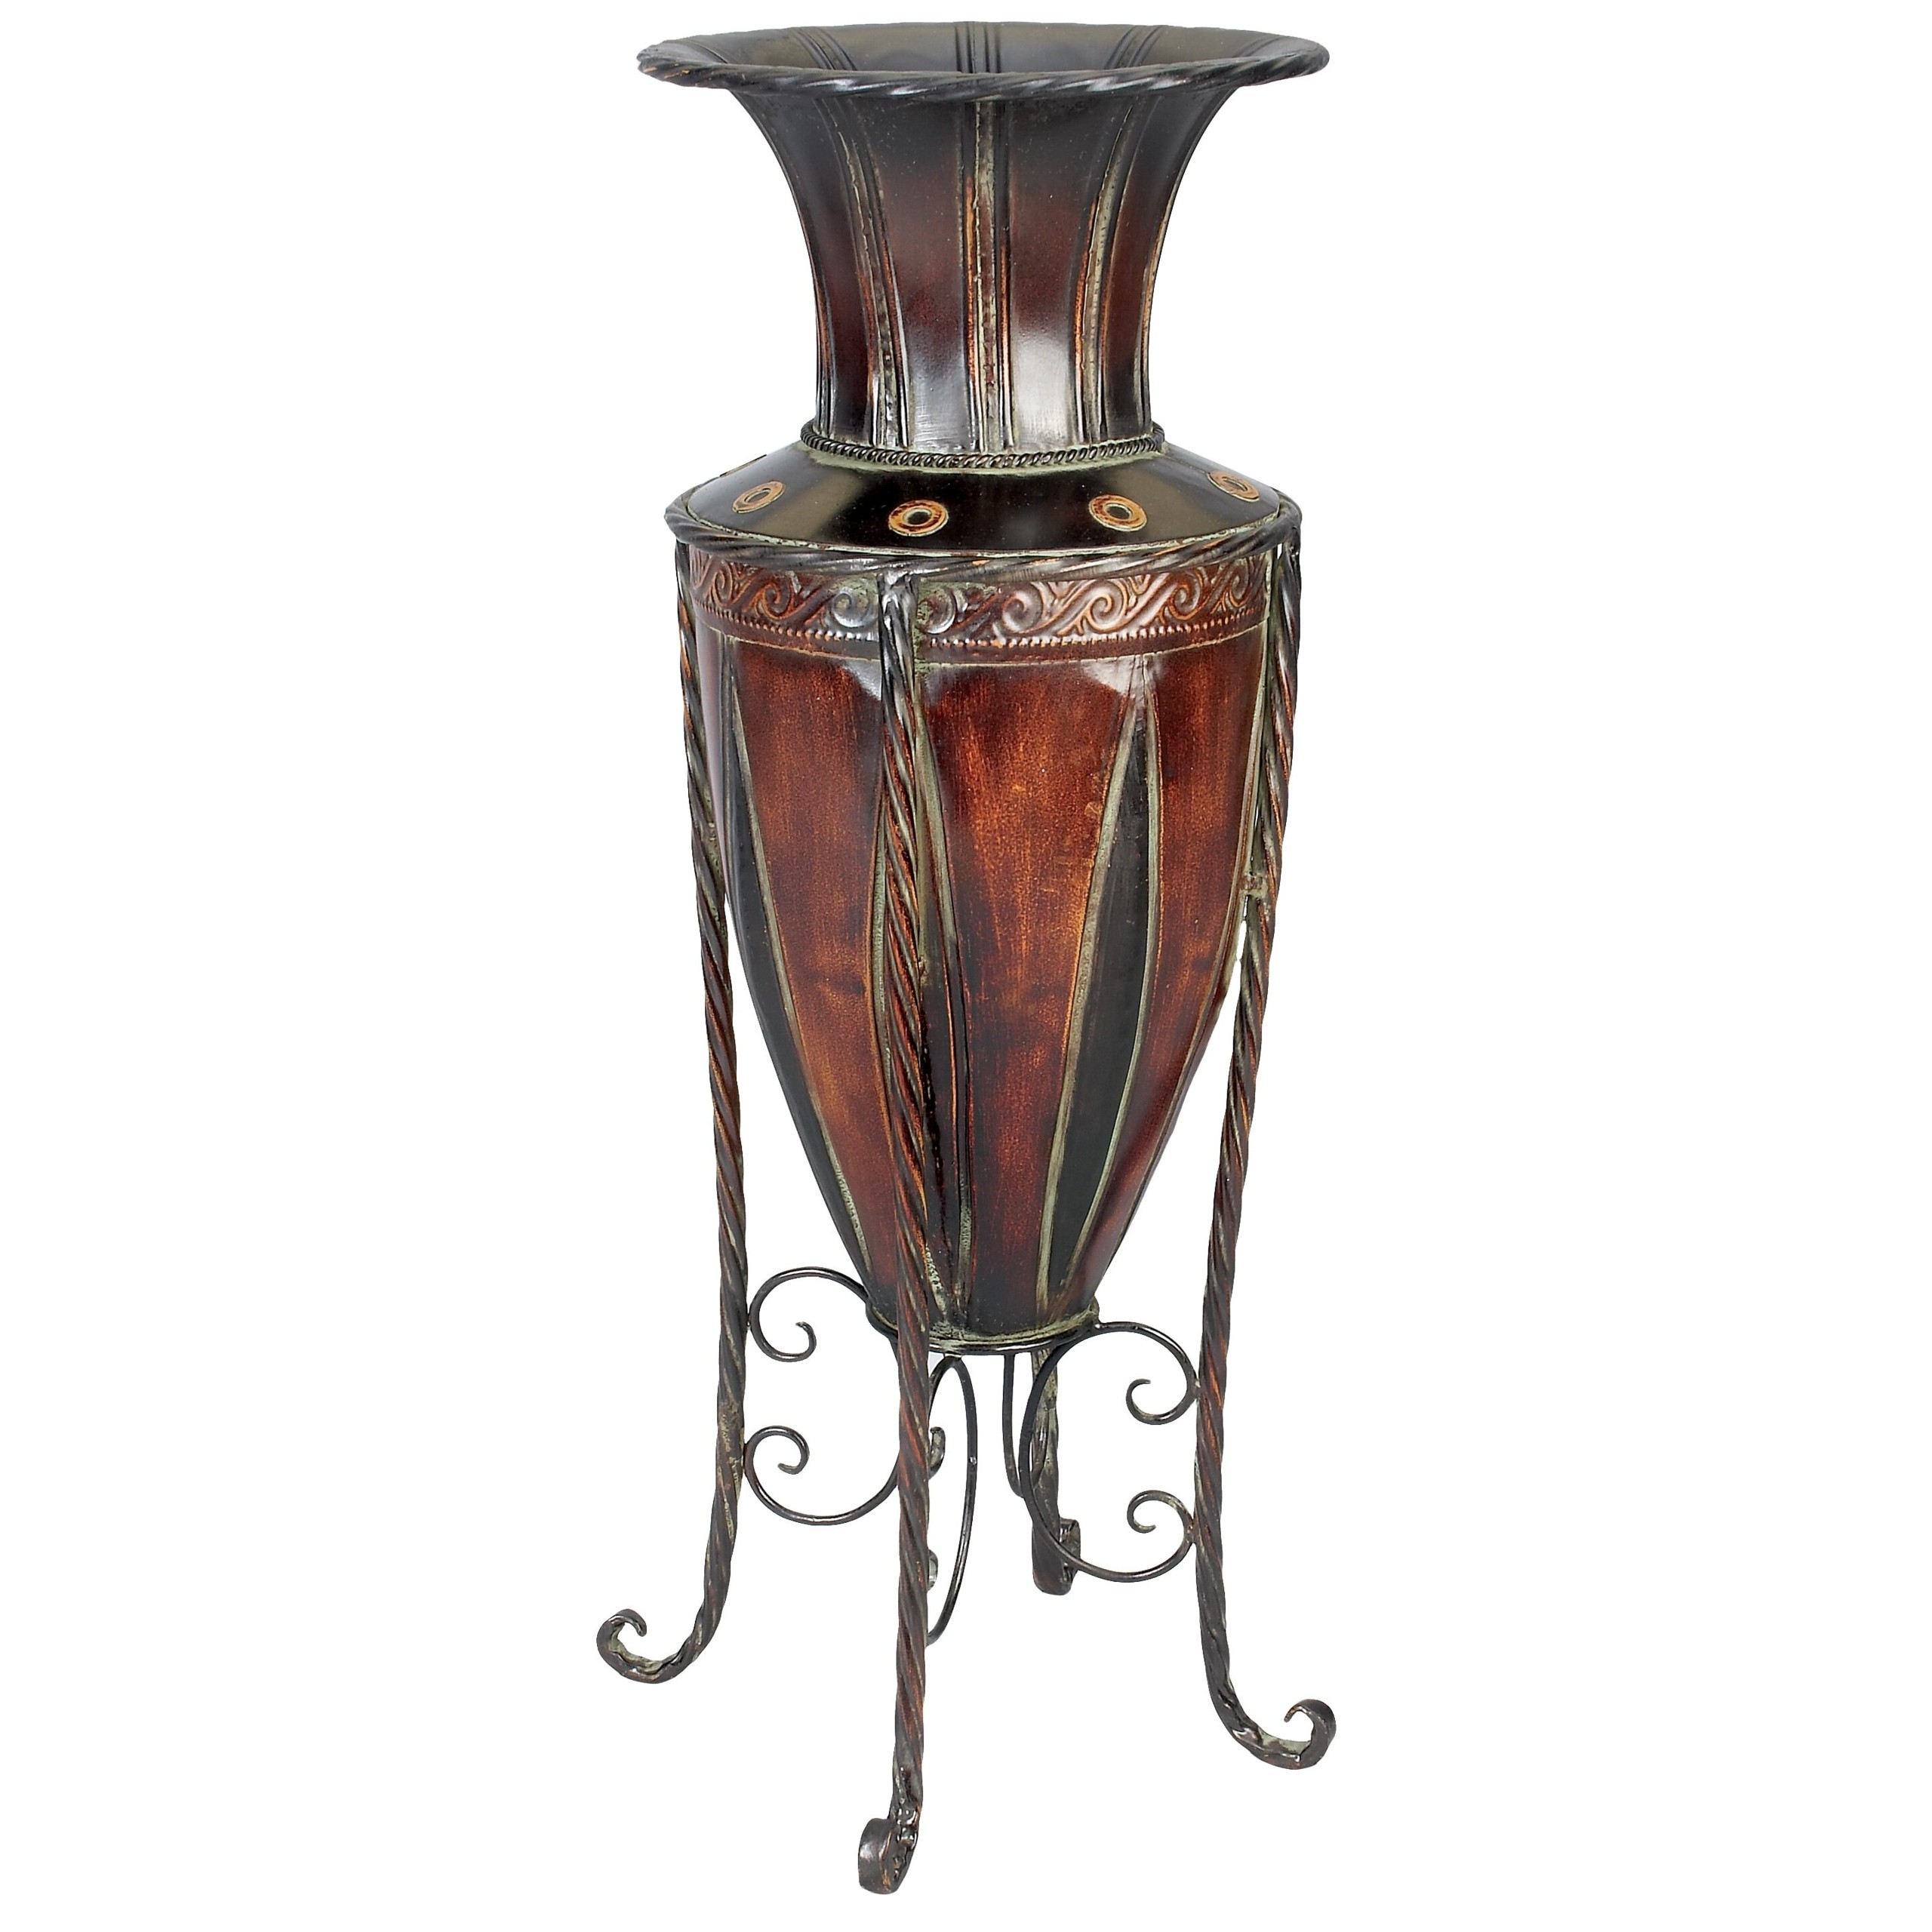 Tuscan Old Metal Planter Vase Stand Tall Table Floor Antique Decor Old Style